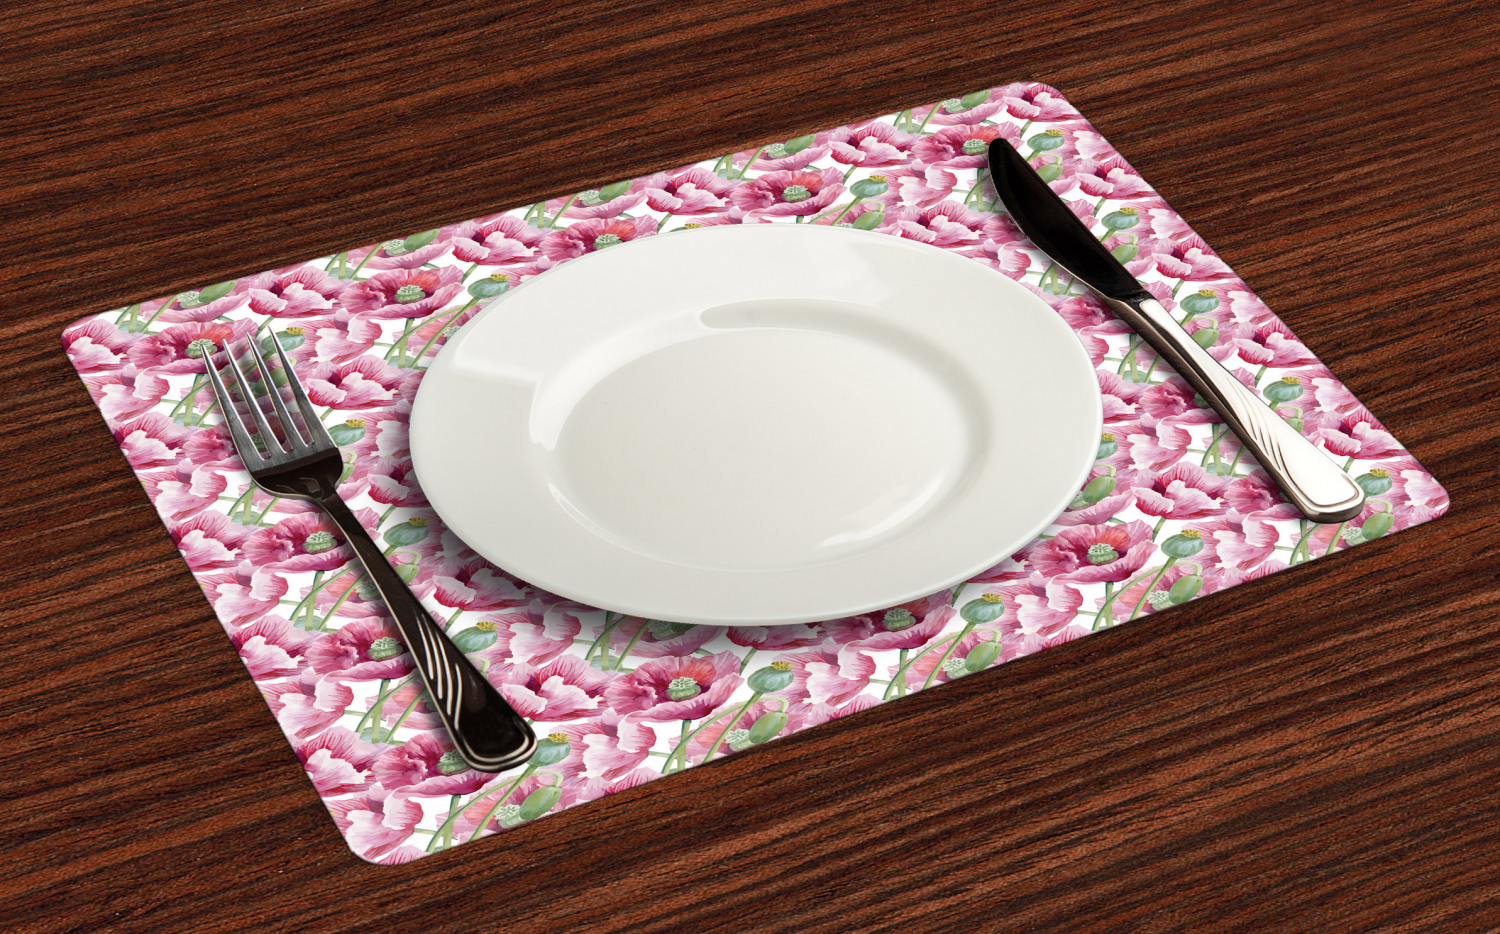 Ambesonne-Flower-Pattern-Placemat-Set-of-4-Fabric-Place-Mats-for-Table-Decor thumbnail 45